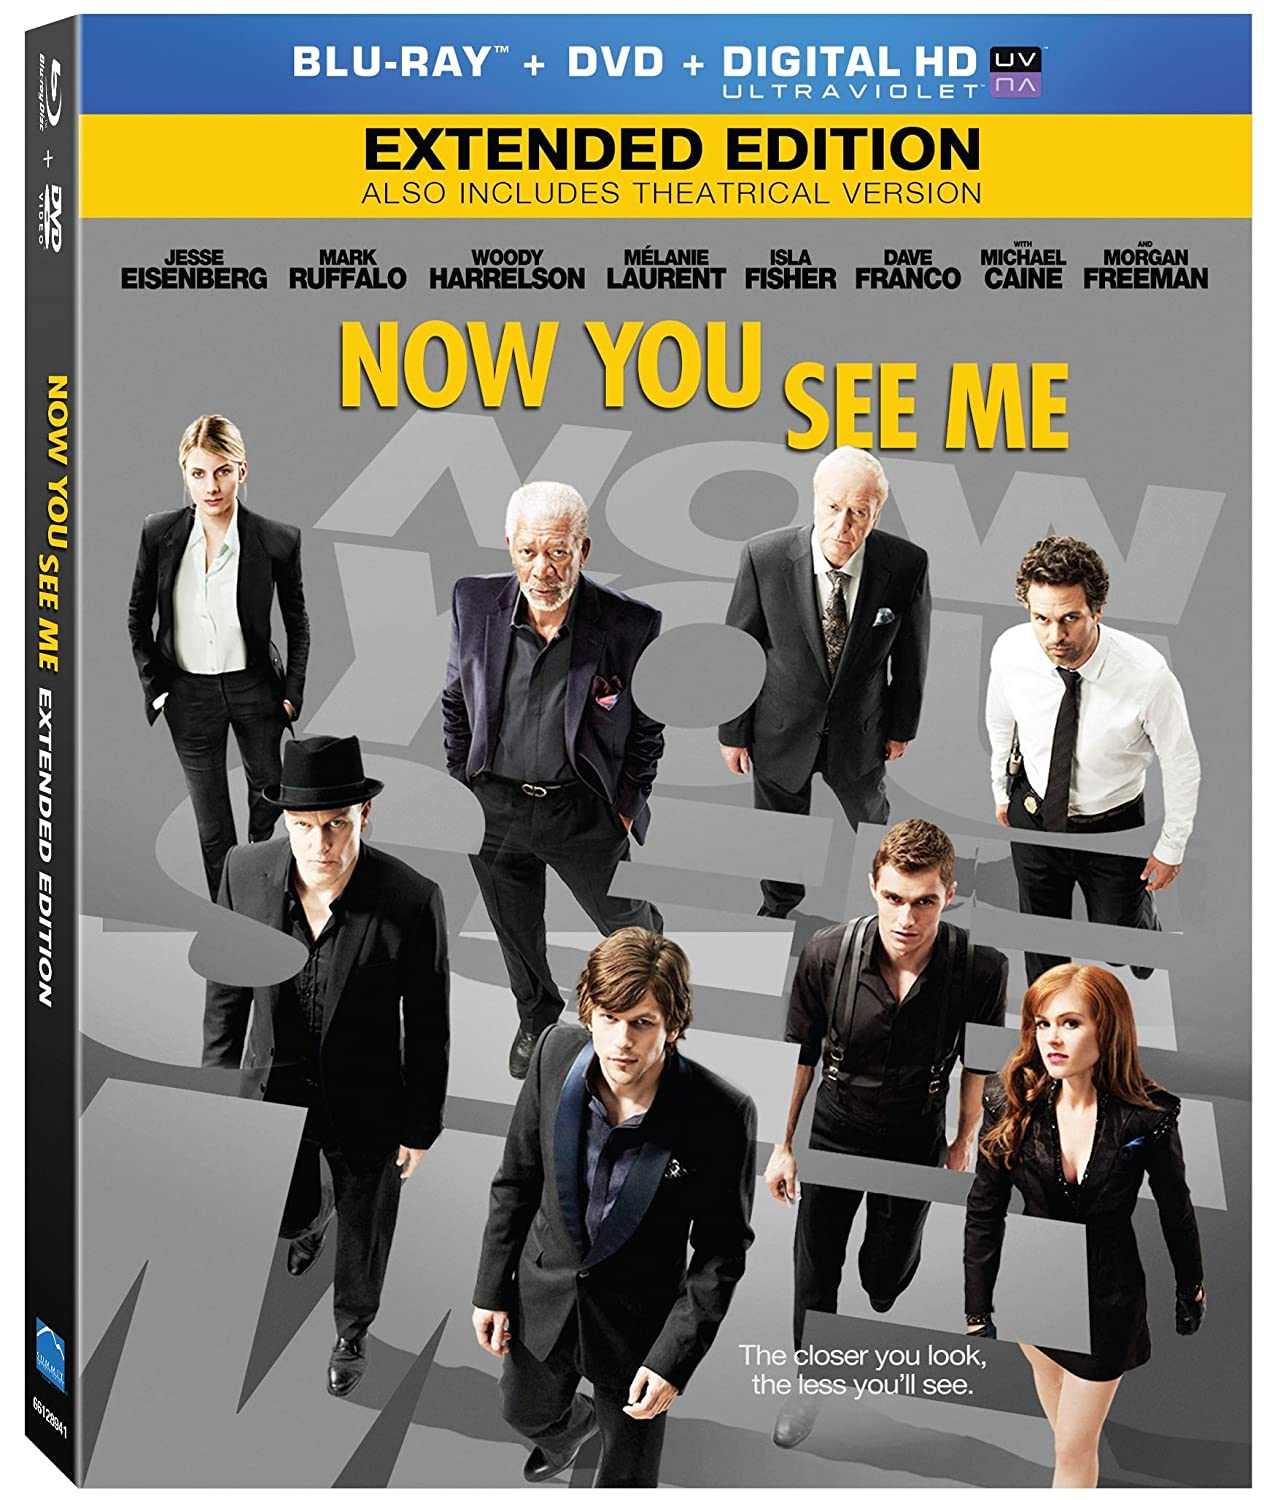 Download Now You See Me 2013 EXTENDED 1080p BluRay x264 anoXmous Torrent